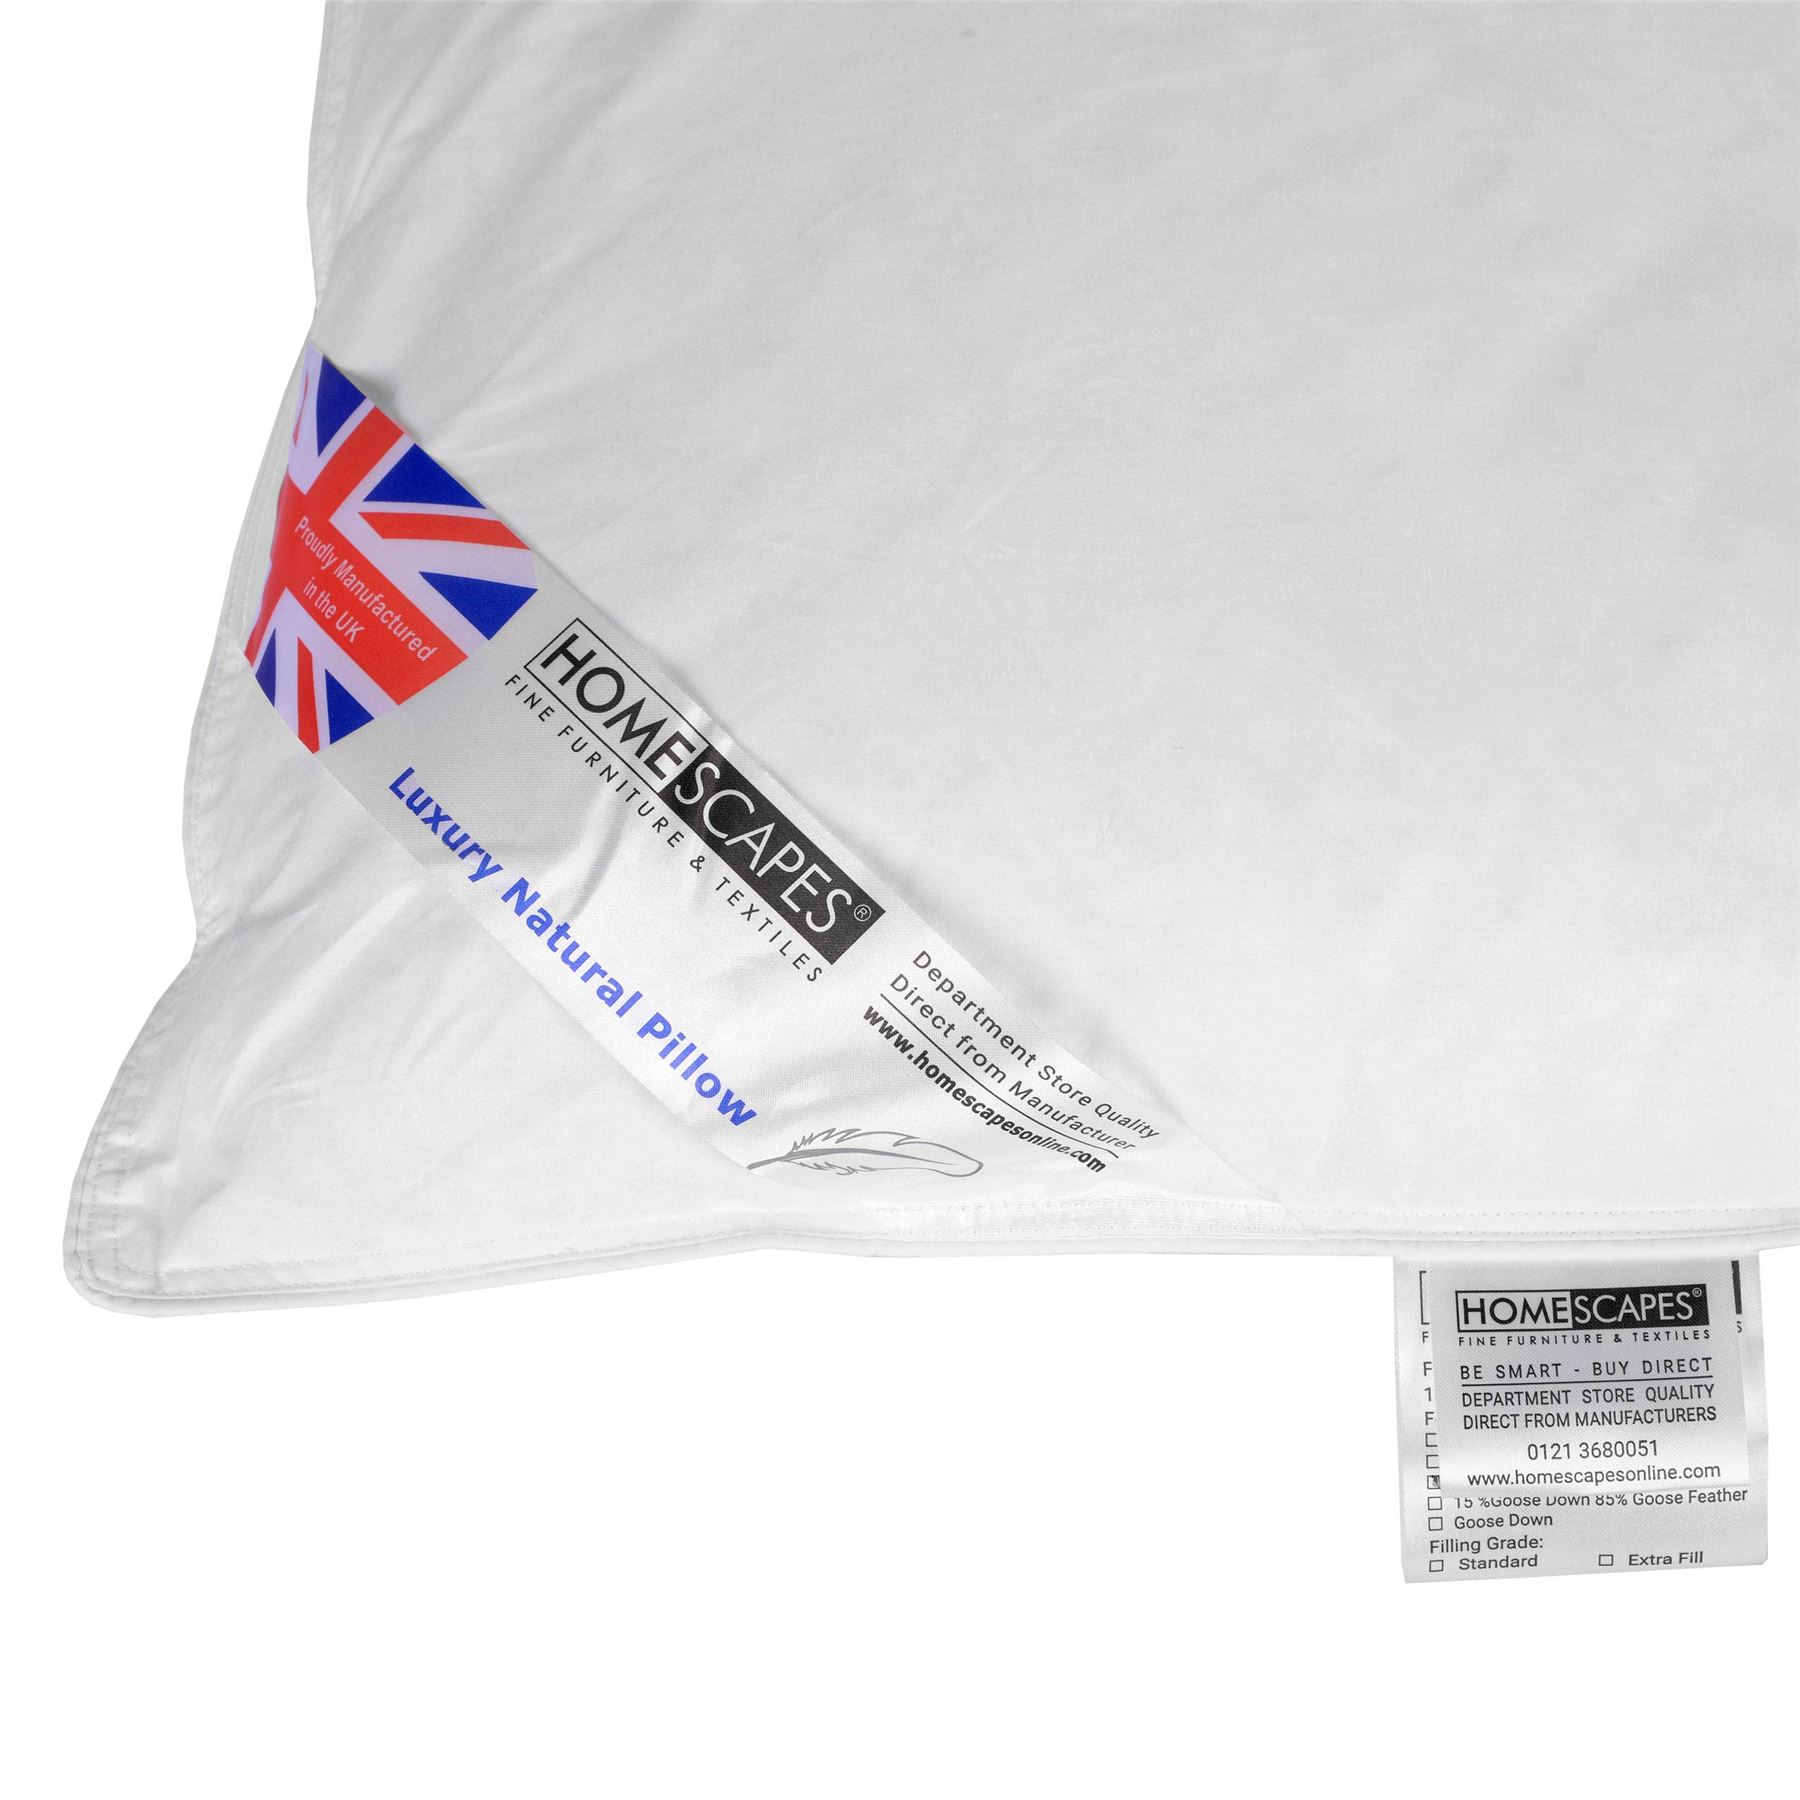 Homescapes-Feather-Pillows-Duck-Goose-Down-Body-V-Shaped-King-Size-continental